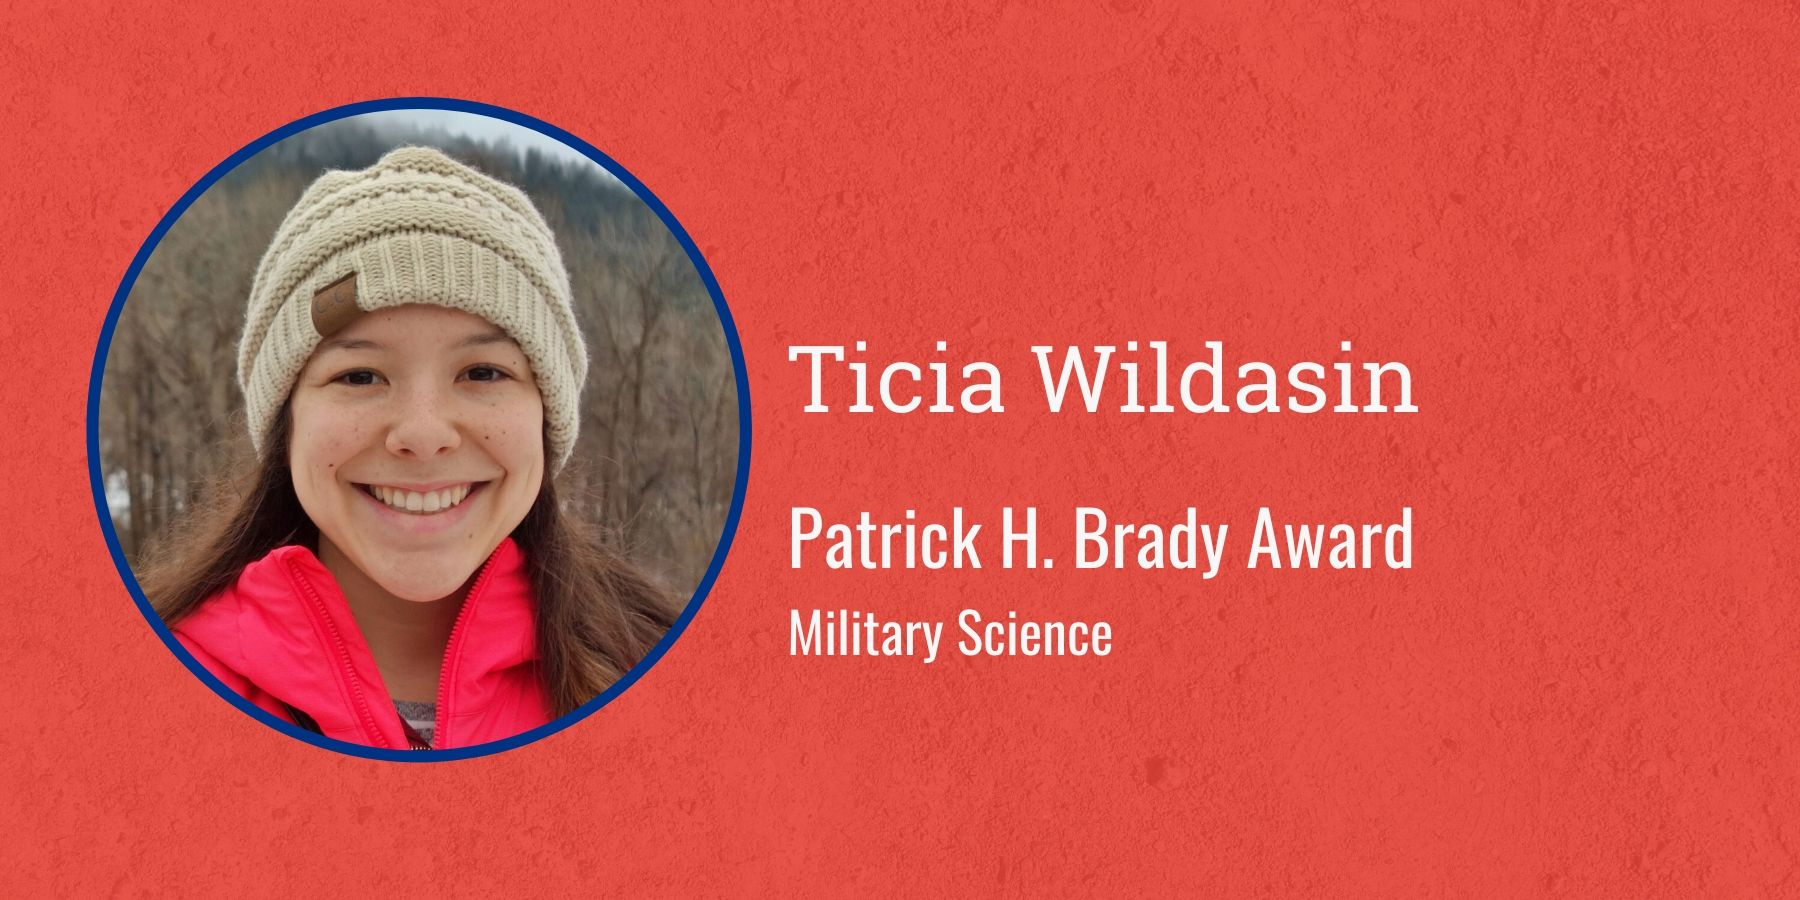 Photo of Ticia Wildasin and text Patrick H. Brady Award, Military Science